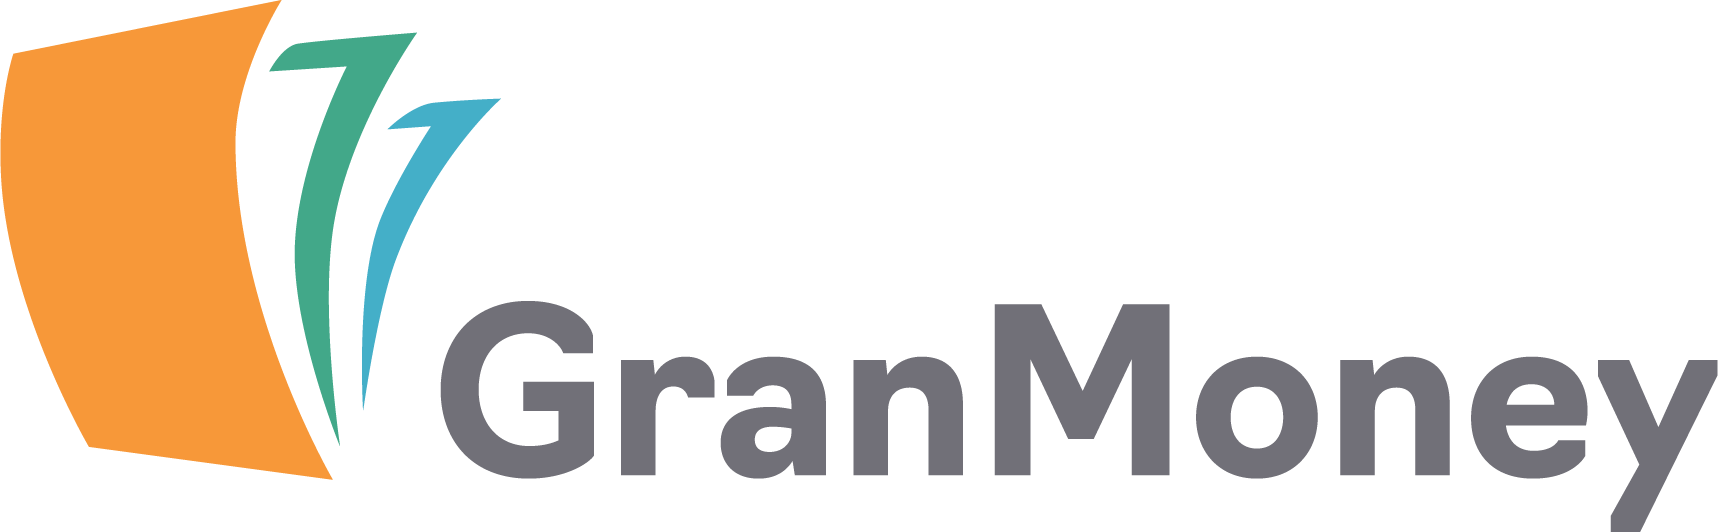 GranMoney Logo